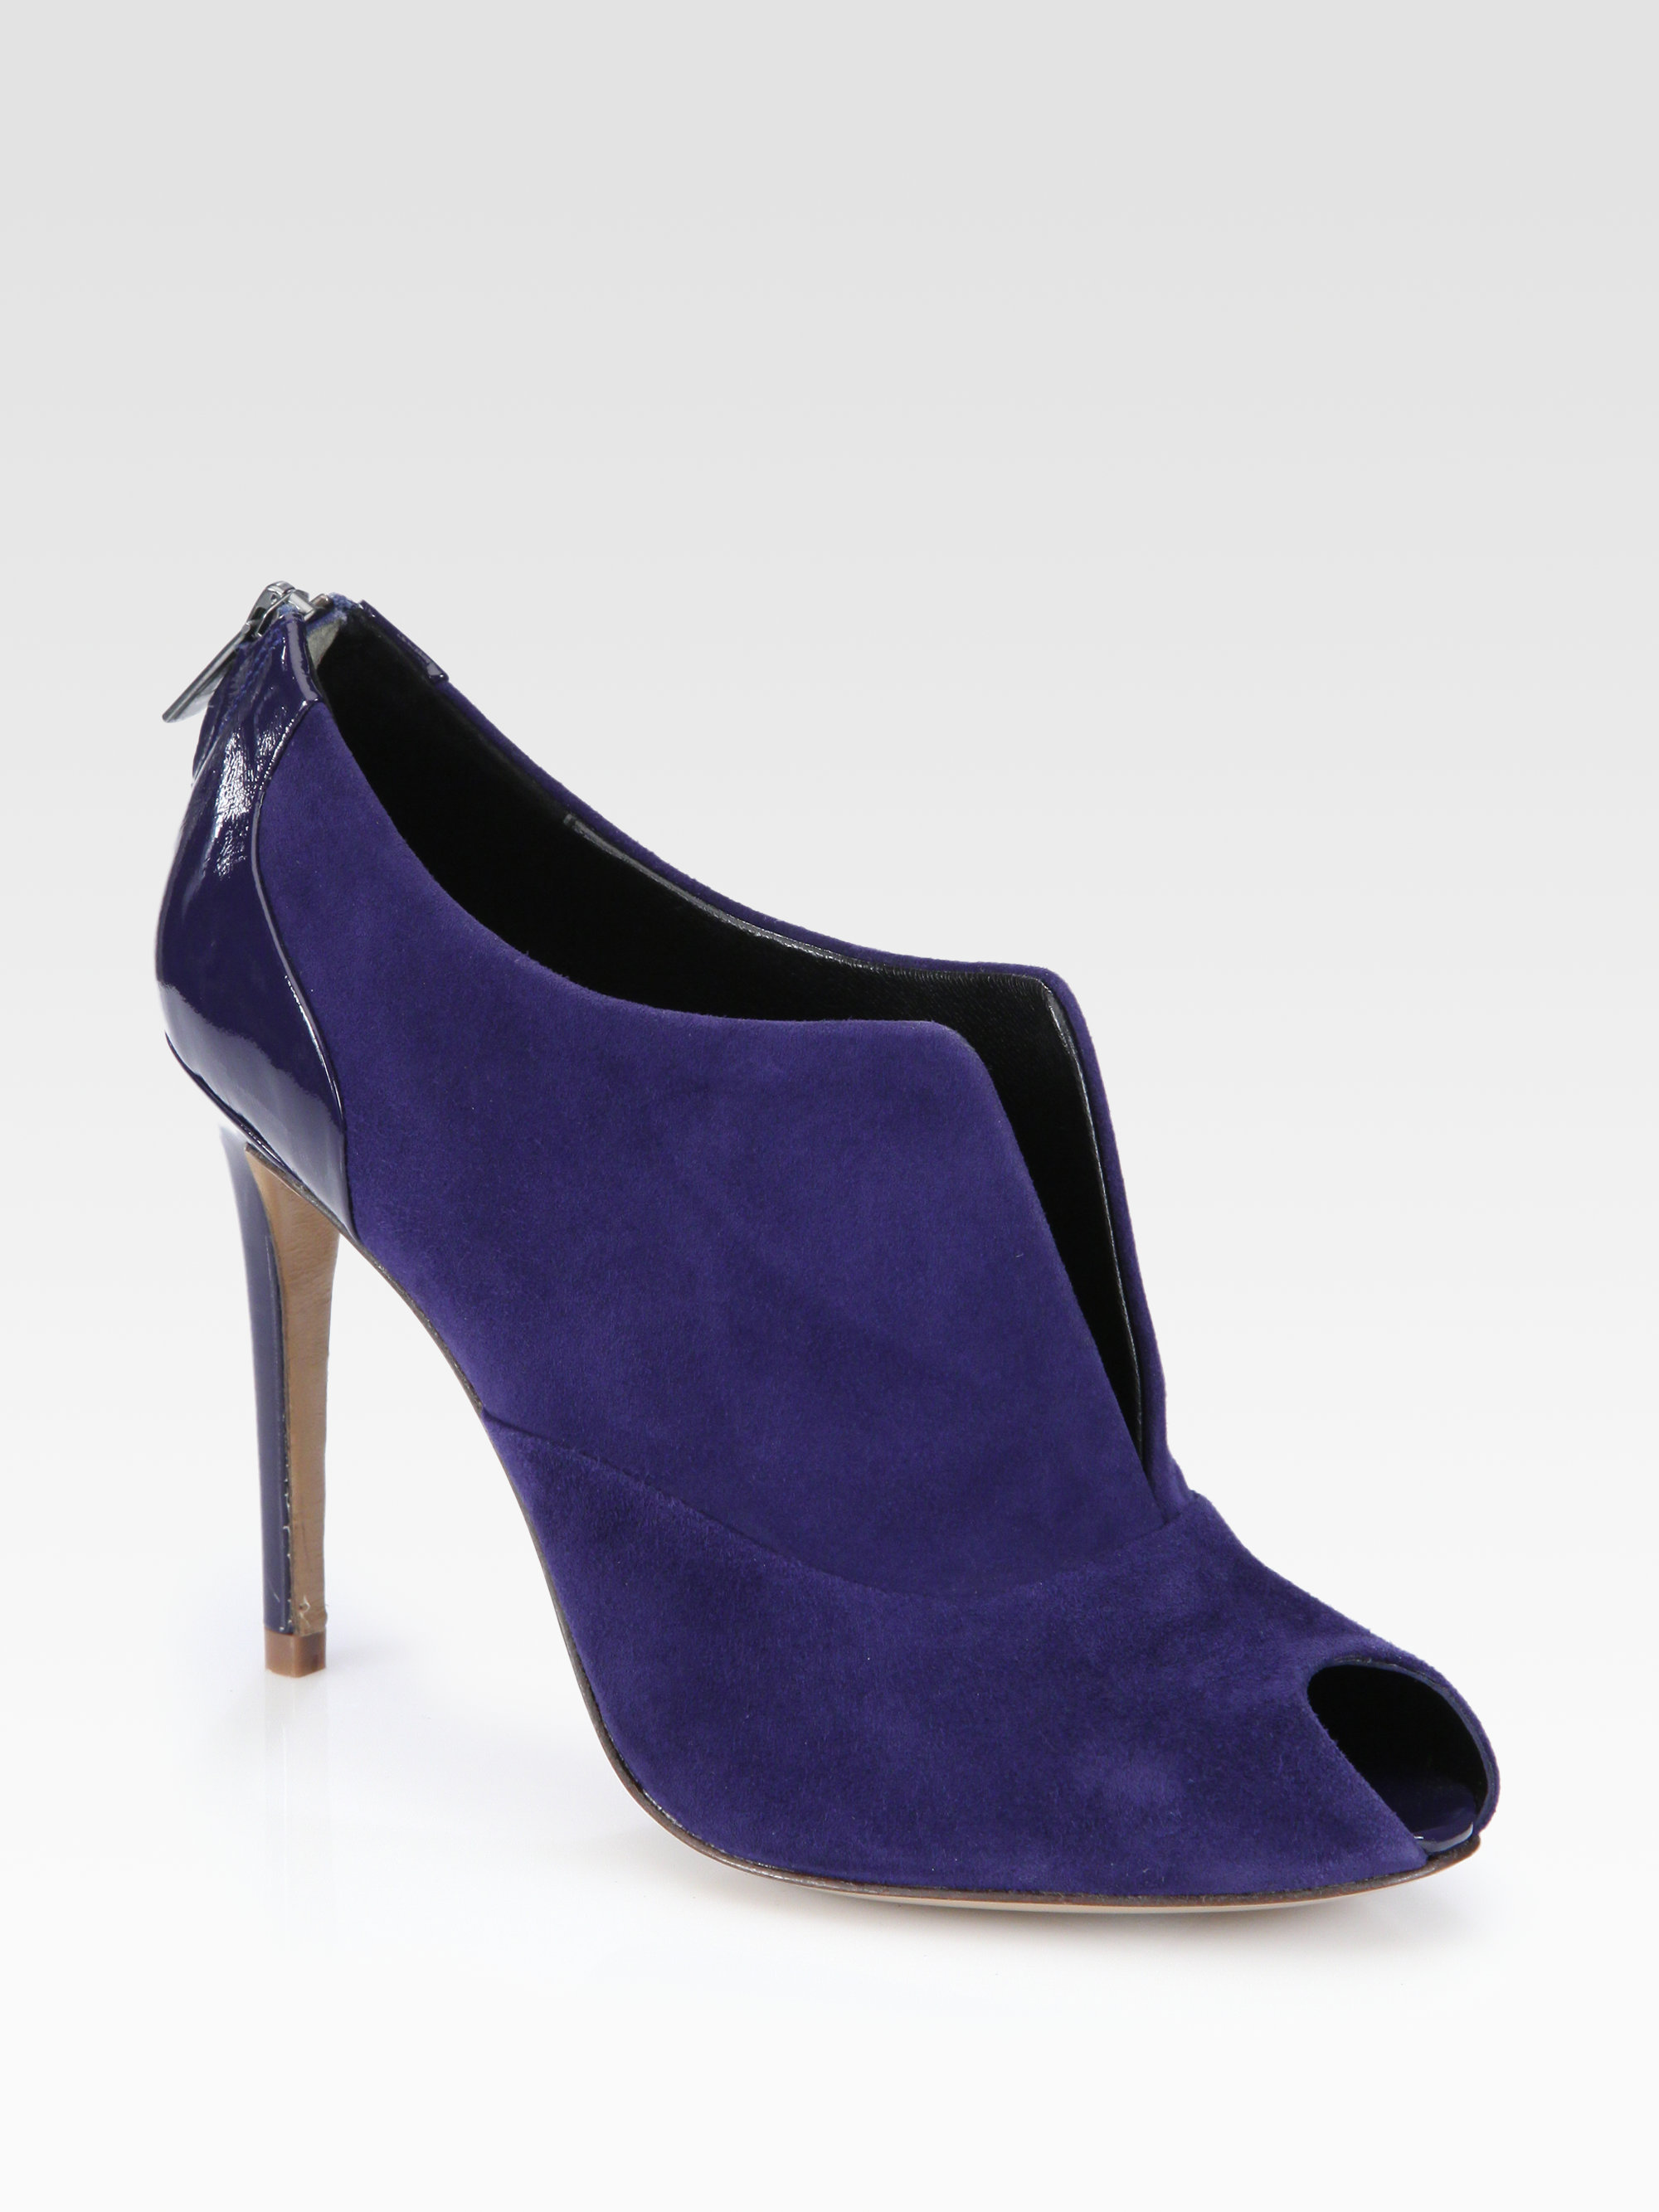 elie tahari suede patent leather ankle boots in blue lyst